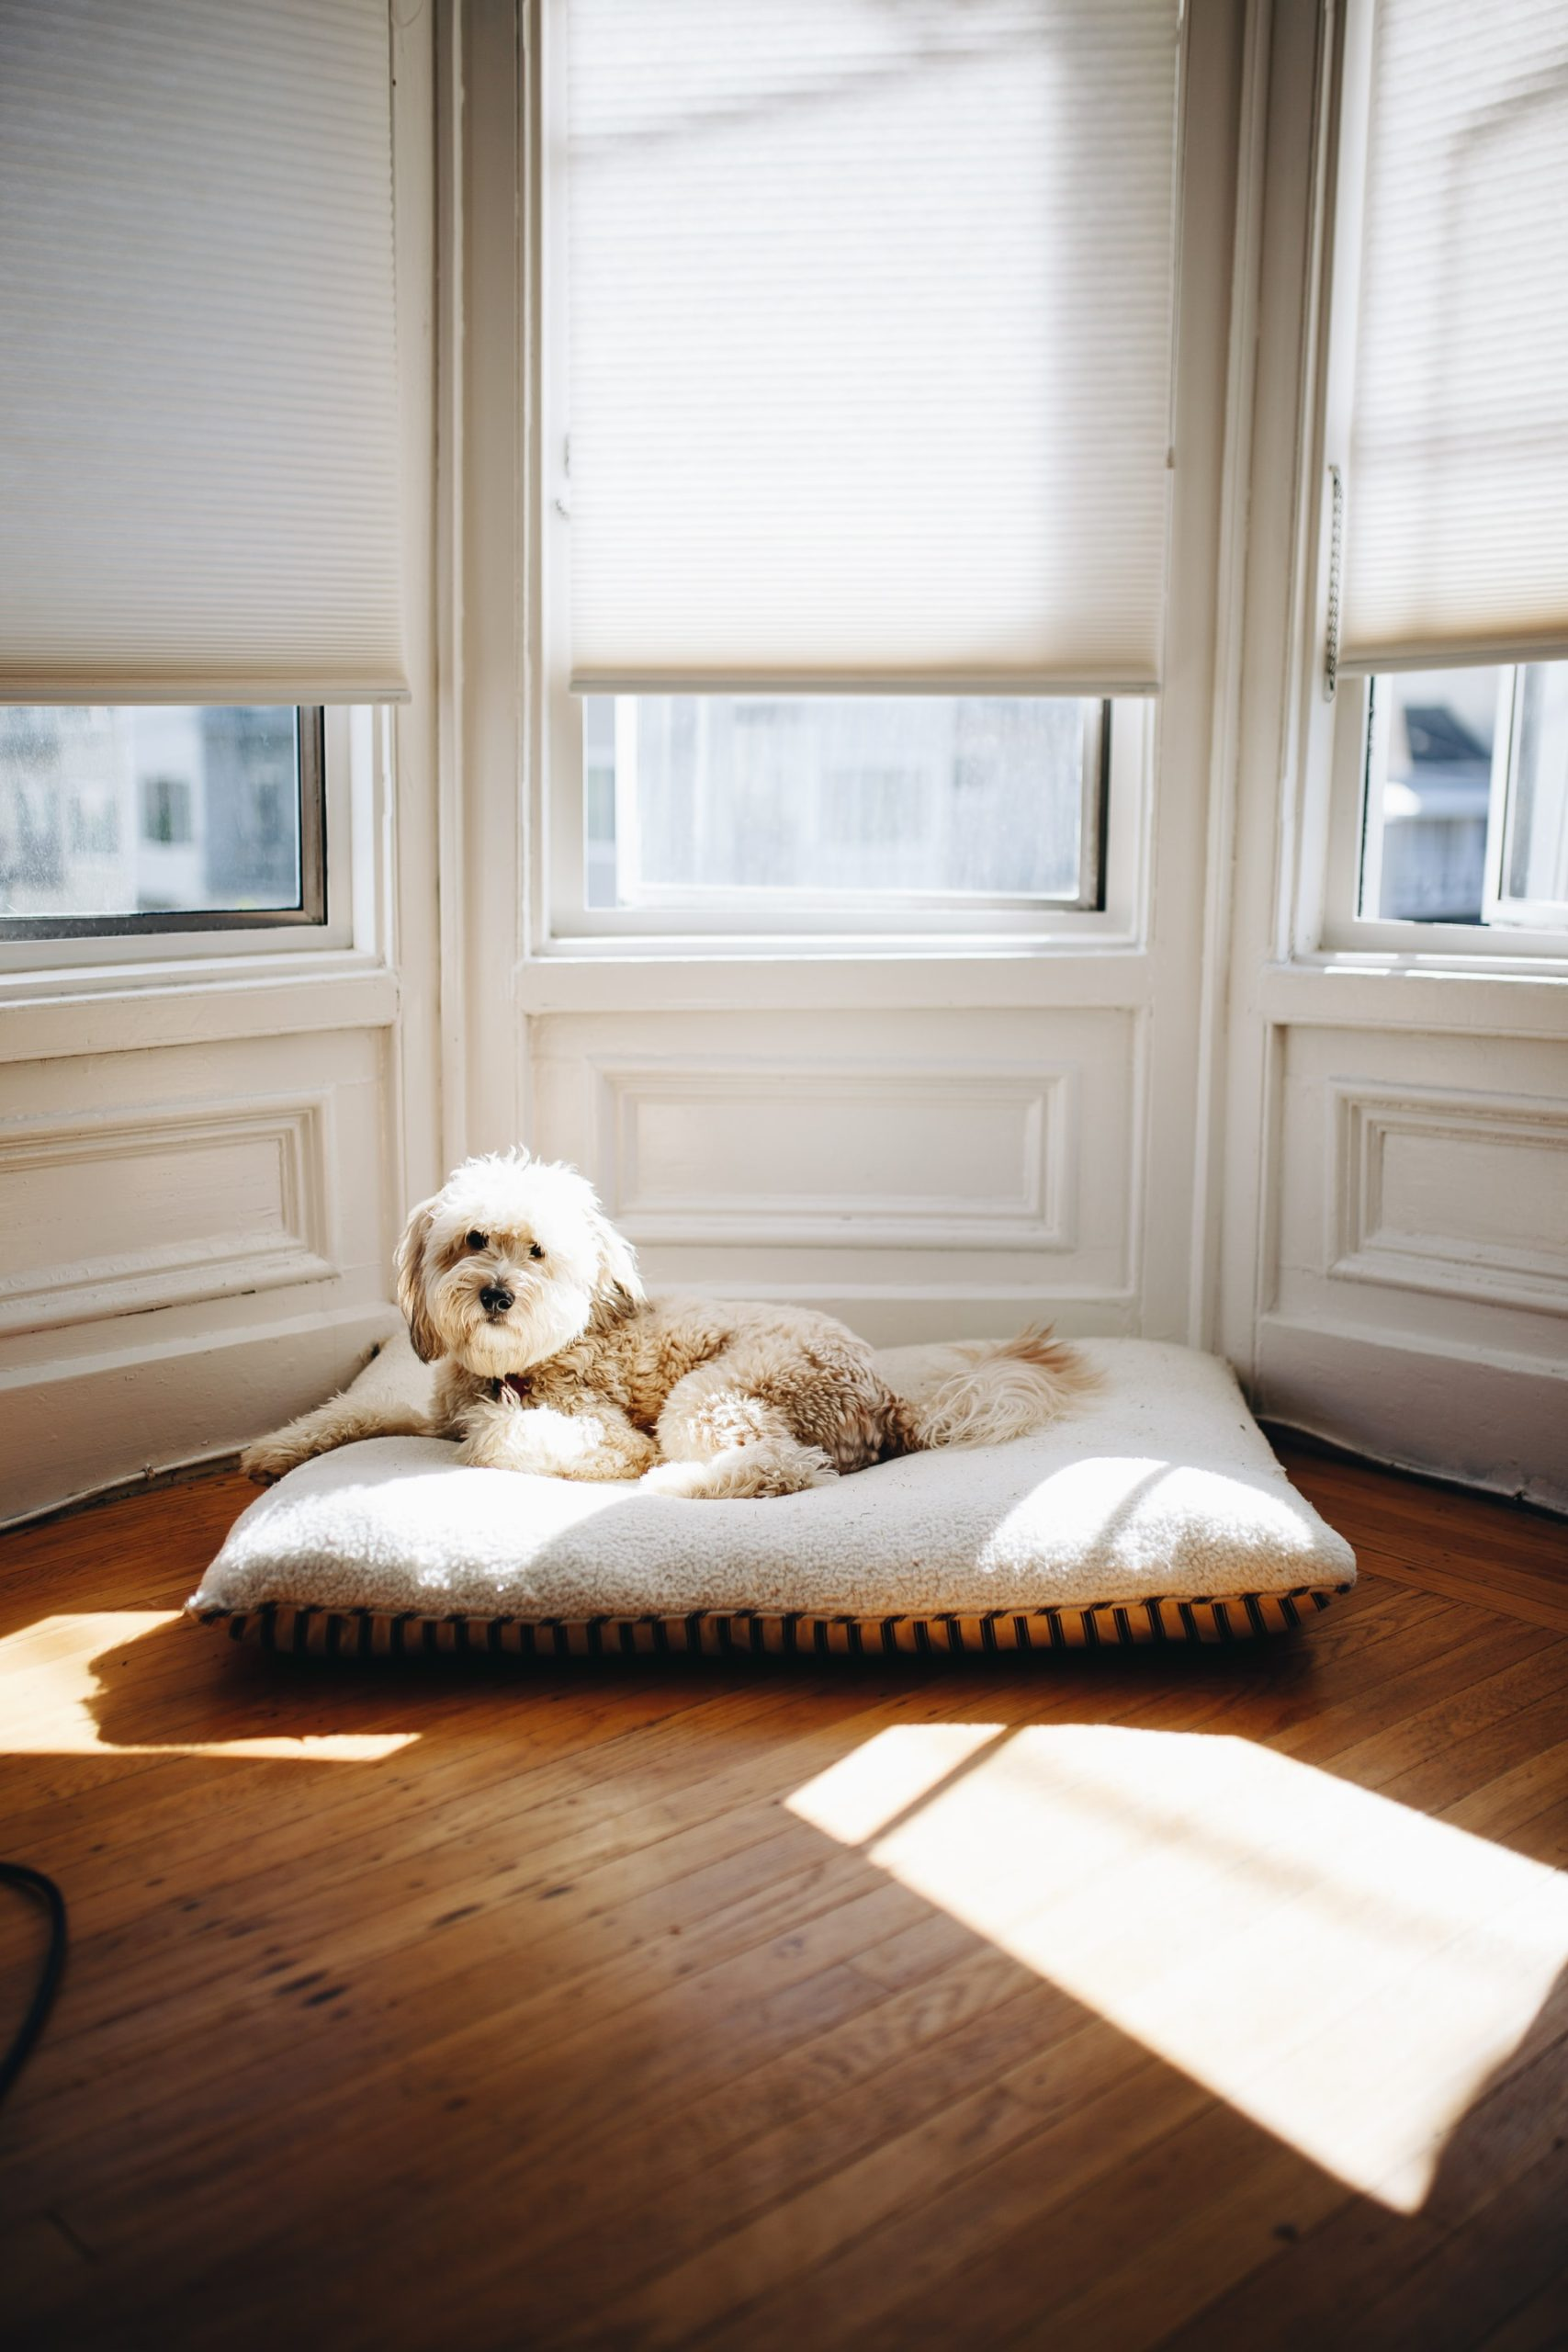 Wash Dog Bed Guide Article Image